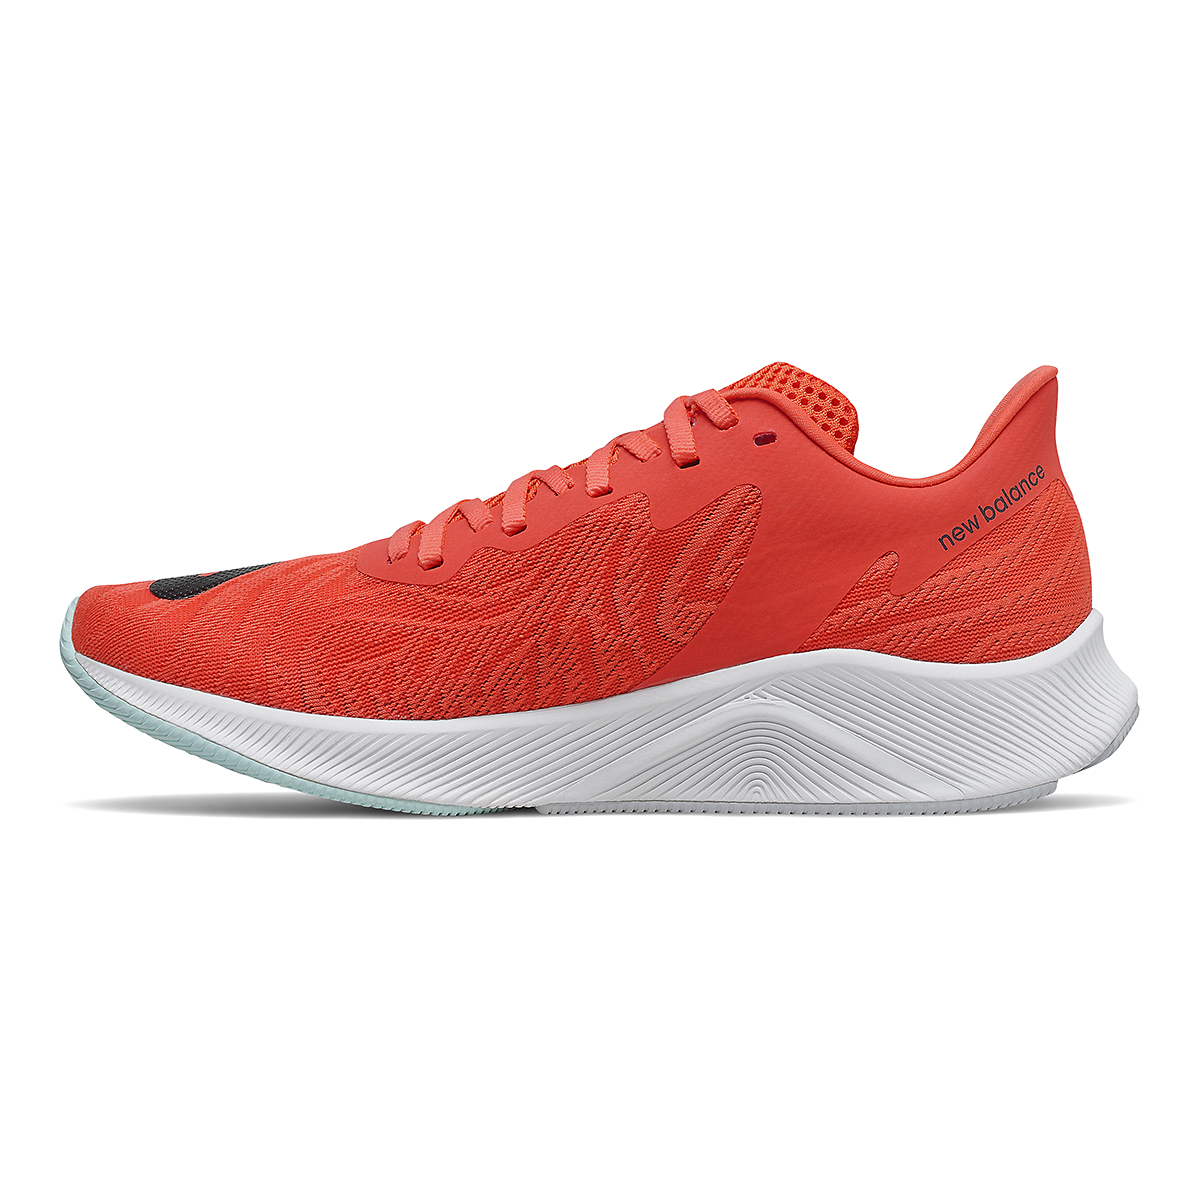 Men's New Balance Fuelcell Prism Running Shoe - Color: Ghost Pepper/Phantom - Size: 6 - Width: Wide, Ghost Pepper/Phantom, large, image 2